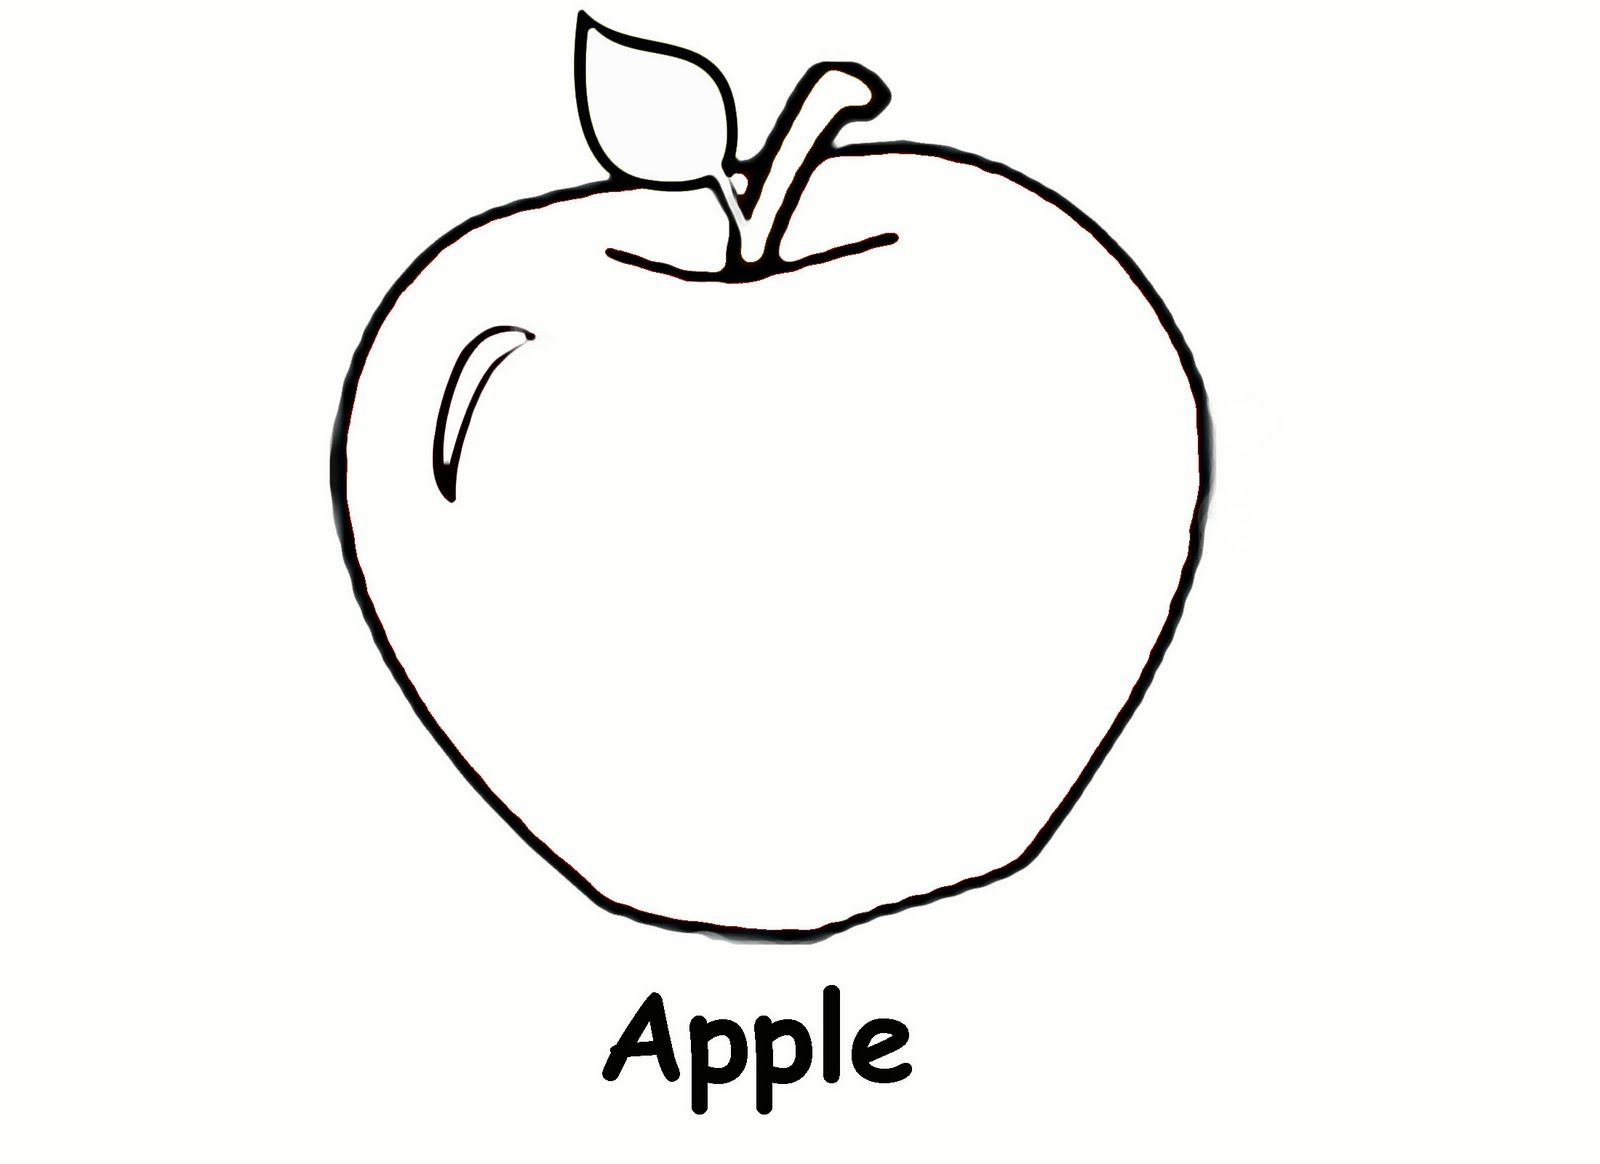 Apple Computer Coloring Pages : Apple to color clipart best